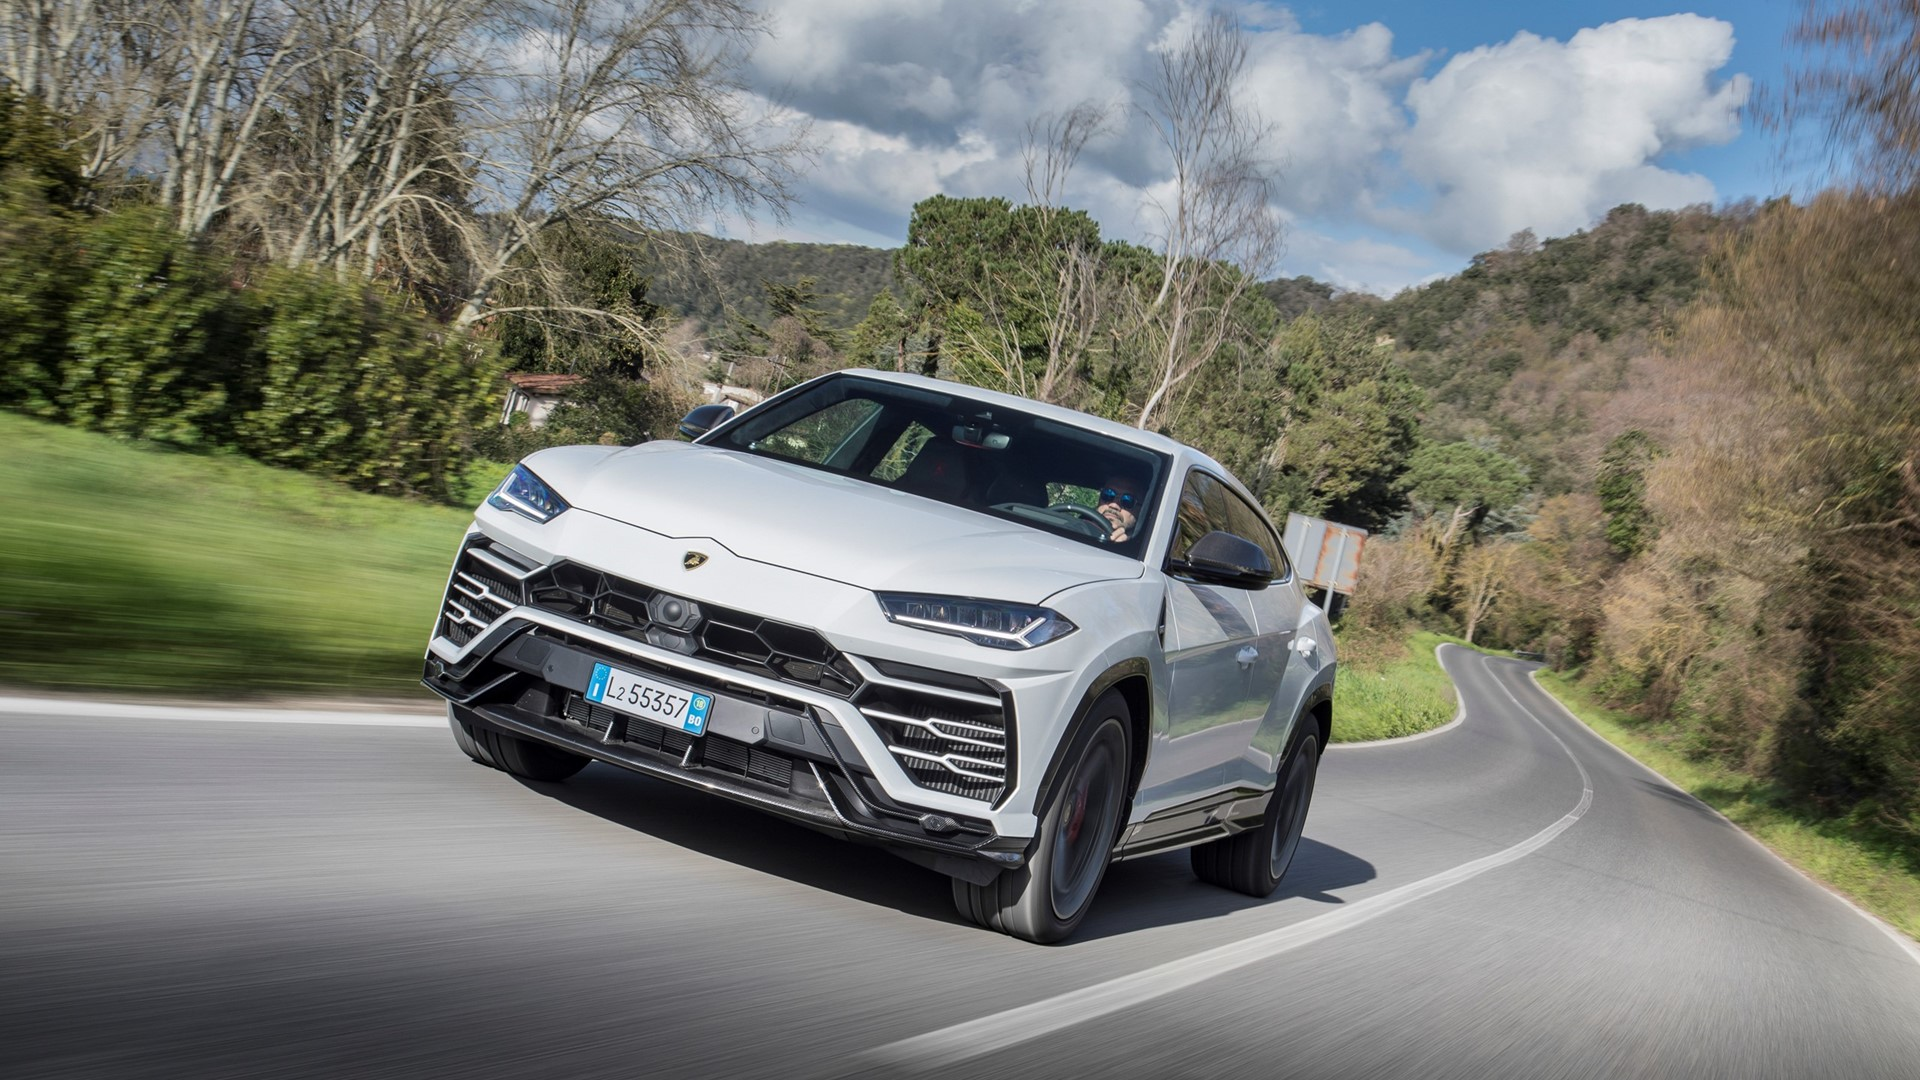 Automobili Lamborghini continues its global growth and marks new historic highs: 8,205 cars delivered in 2019 - Image 3